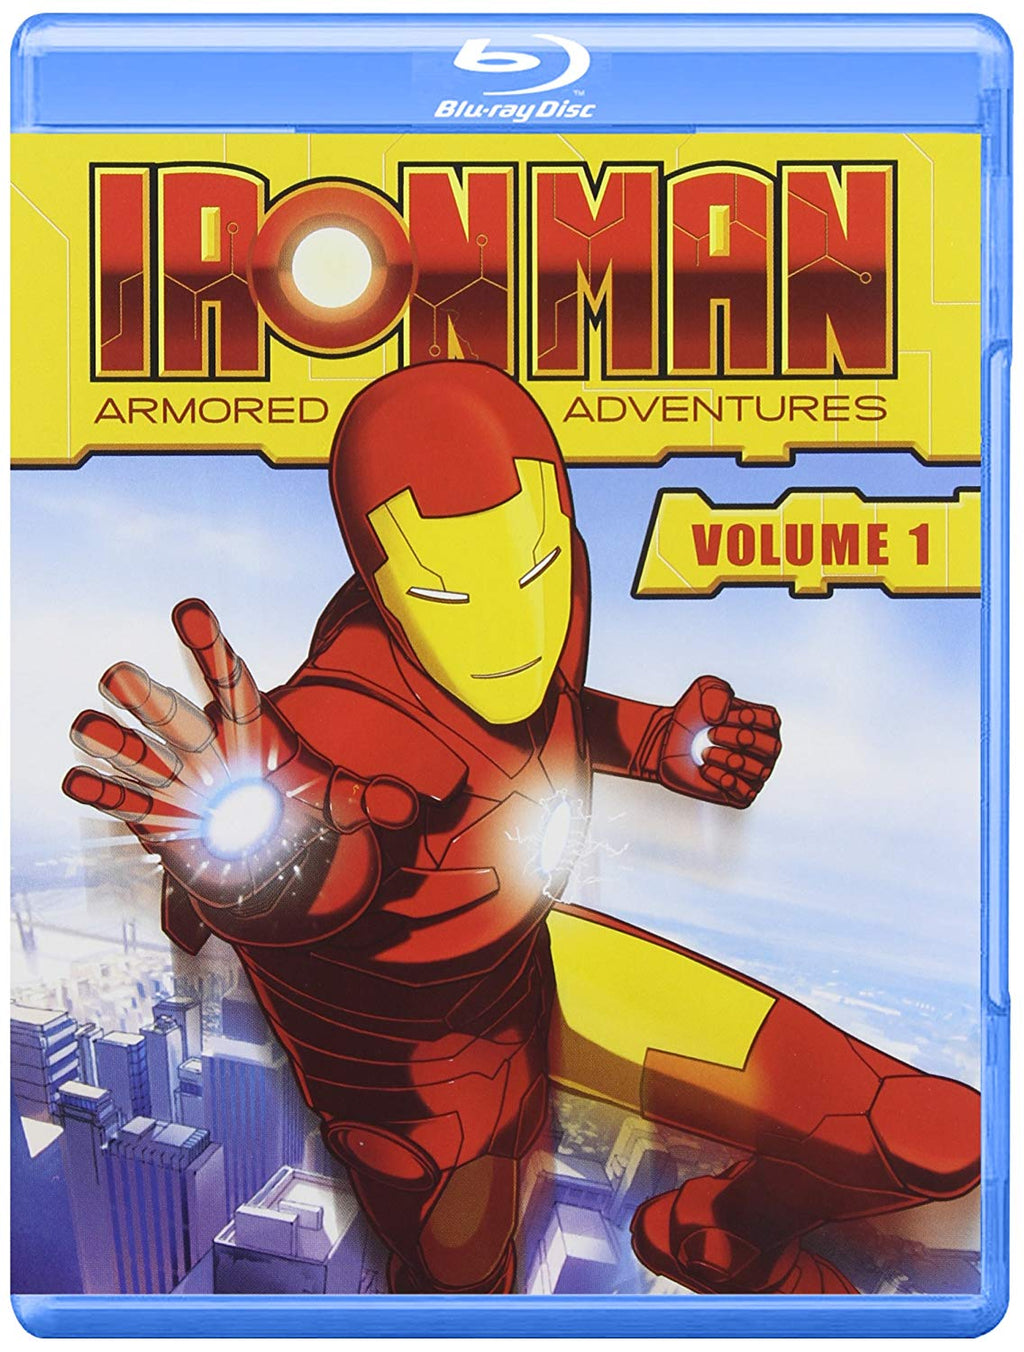 Iron Man: Armored Adventures Vol. 1 Blu-ray